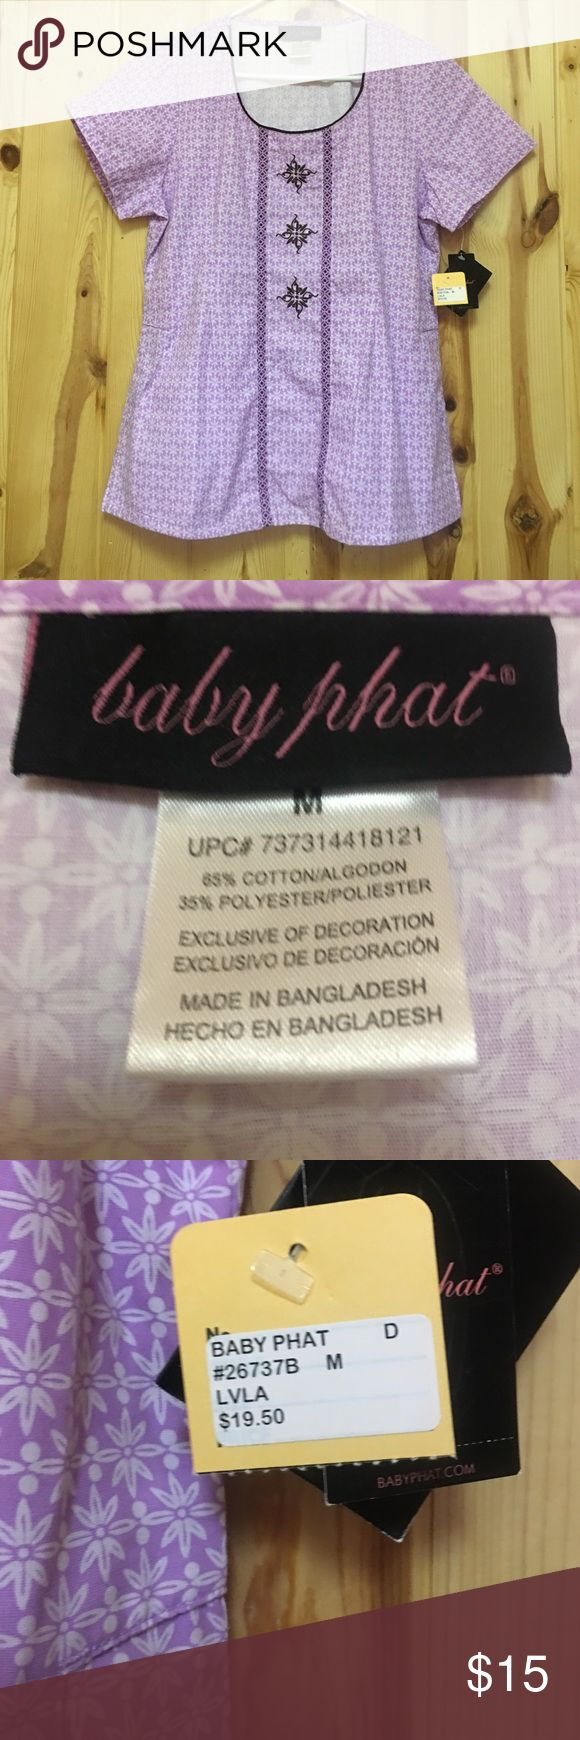 Baby Phat Scrub Top Medium NWT New With Tags Baby Phat Scrub Top Has 2 Side Pockets Retail Price 19.50 My Price at $15 is Firm Baby Phat Tops